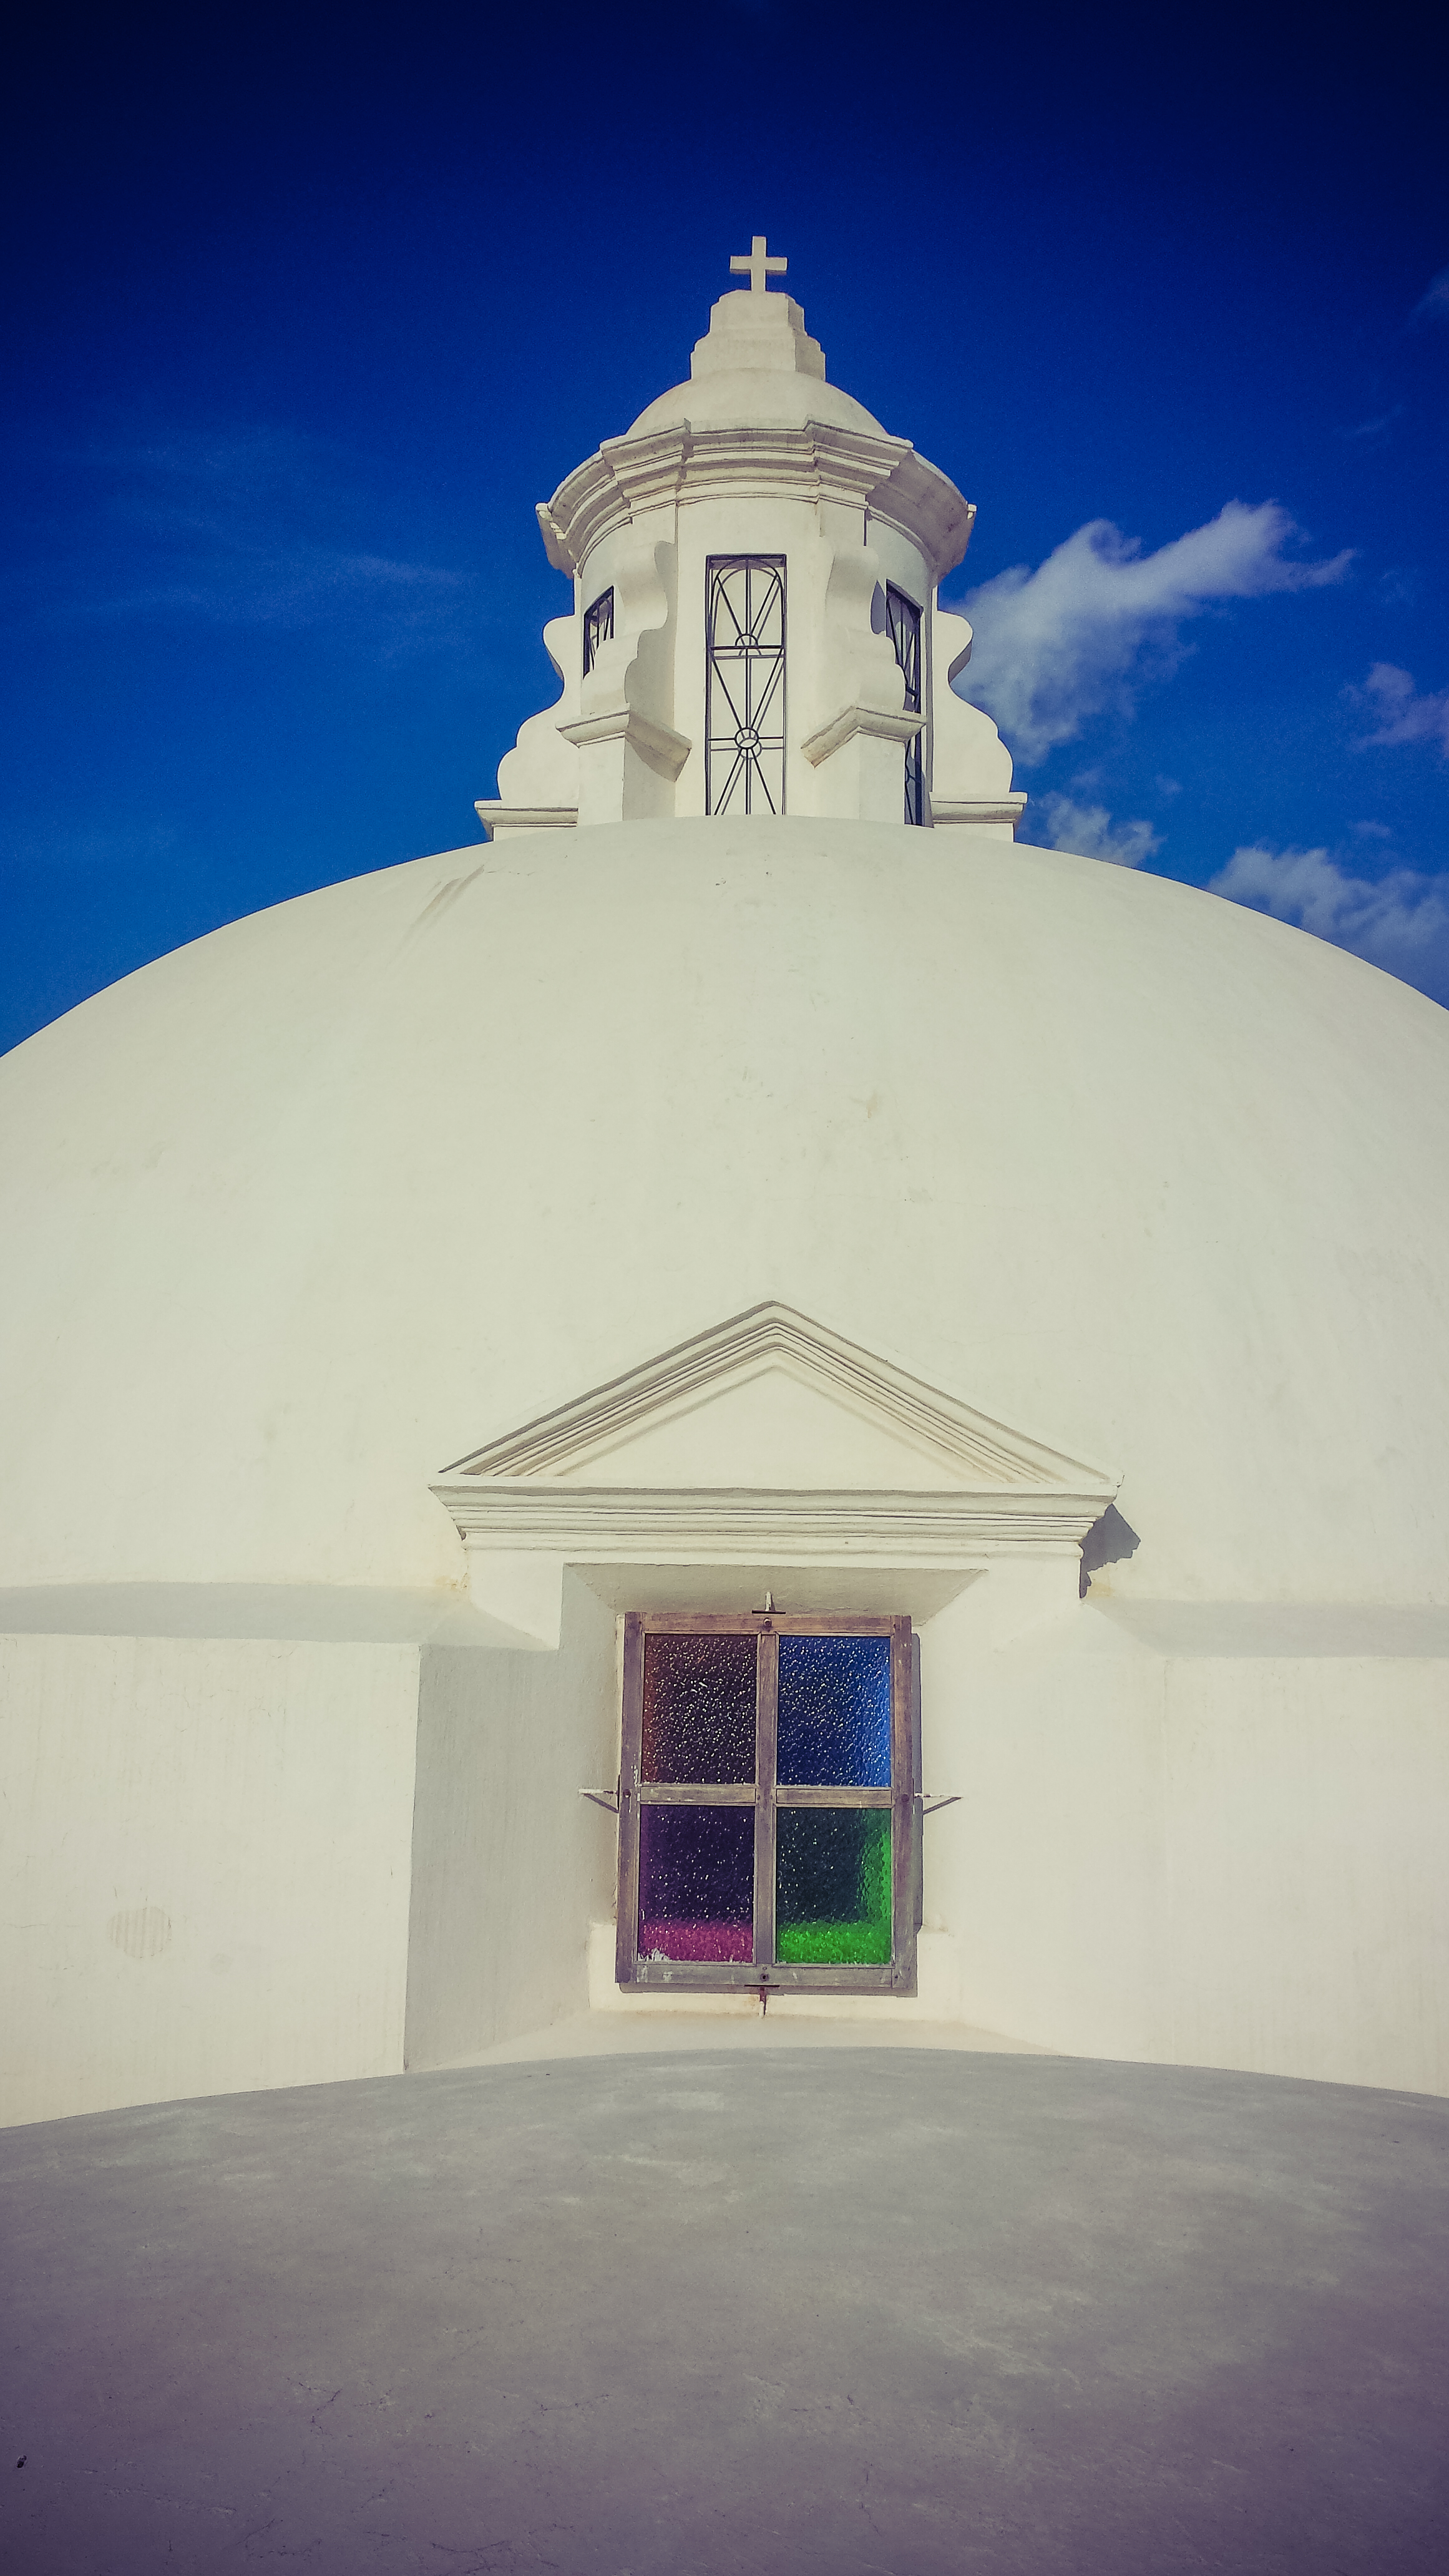 Loved the little windows on the domes